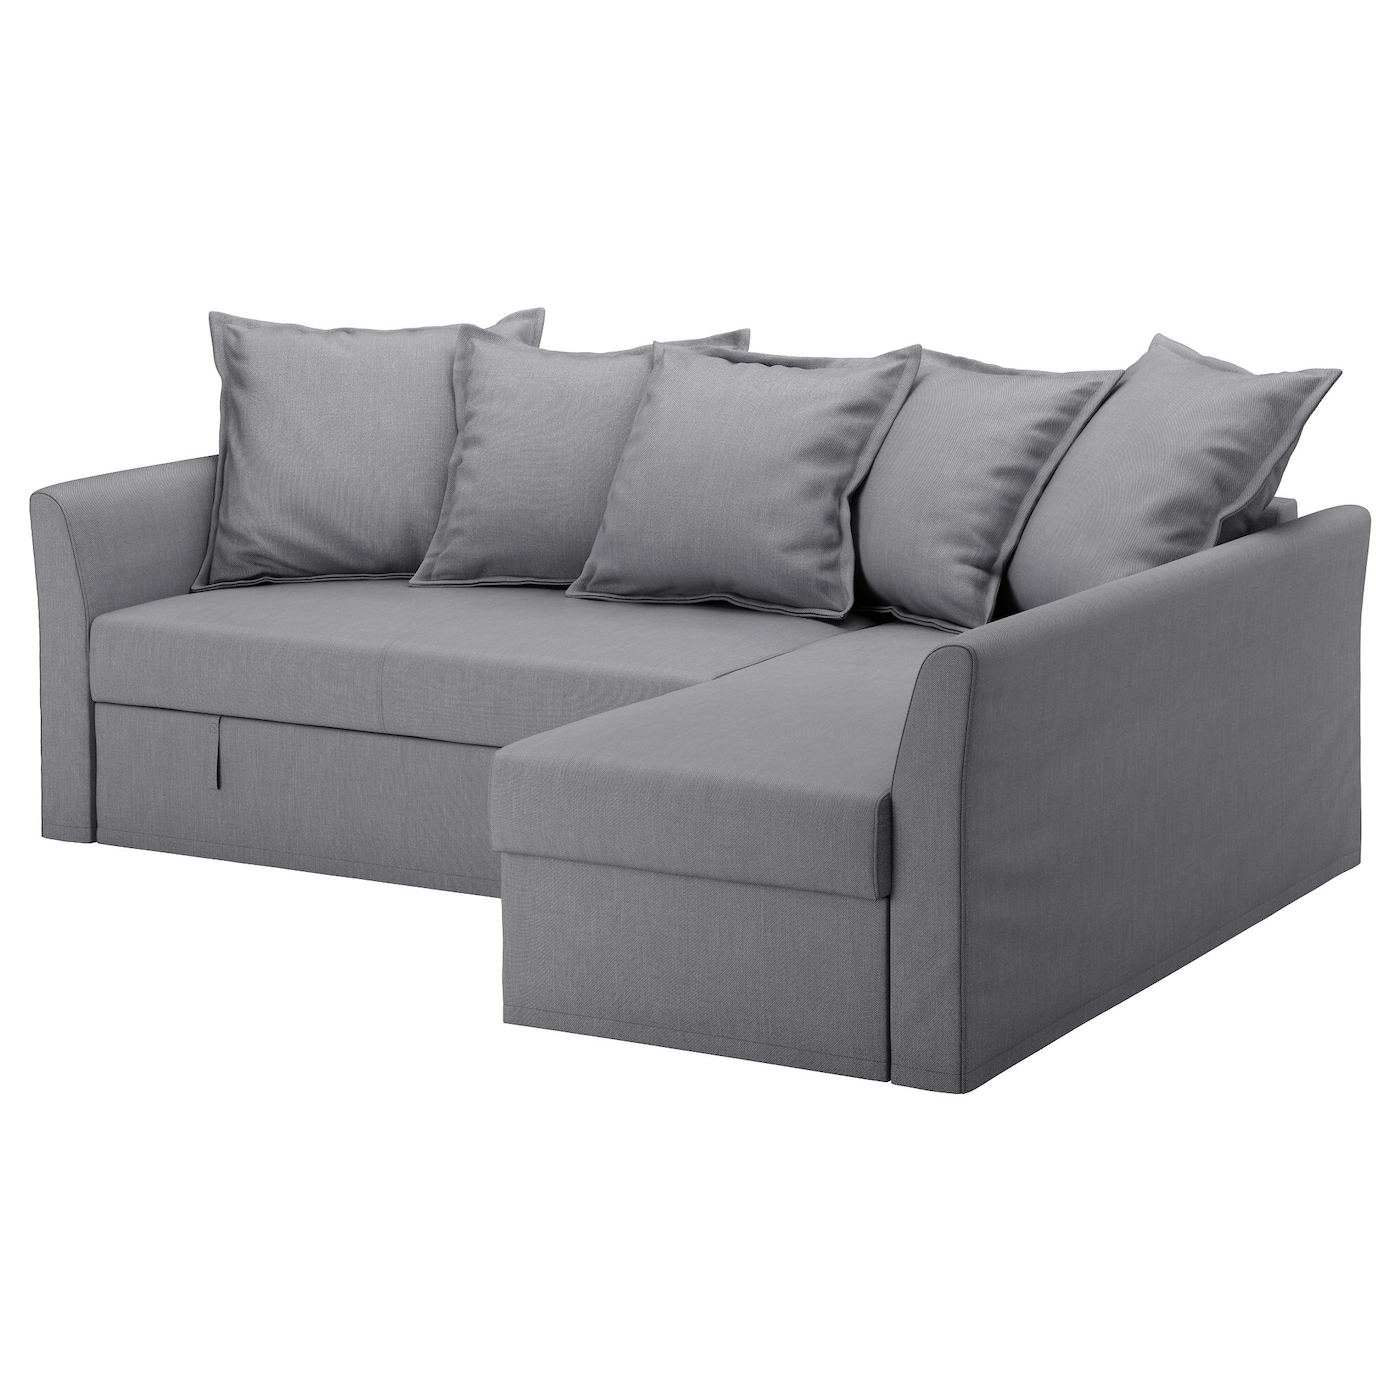 ikea holmsund corner sofa bed cover made of extra hard wearing polyester with a - Corner Sofa Bed